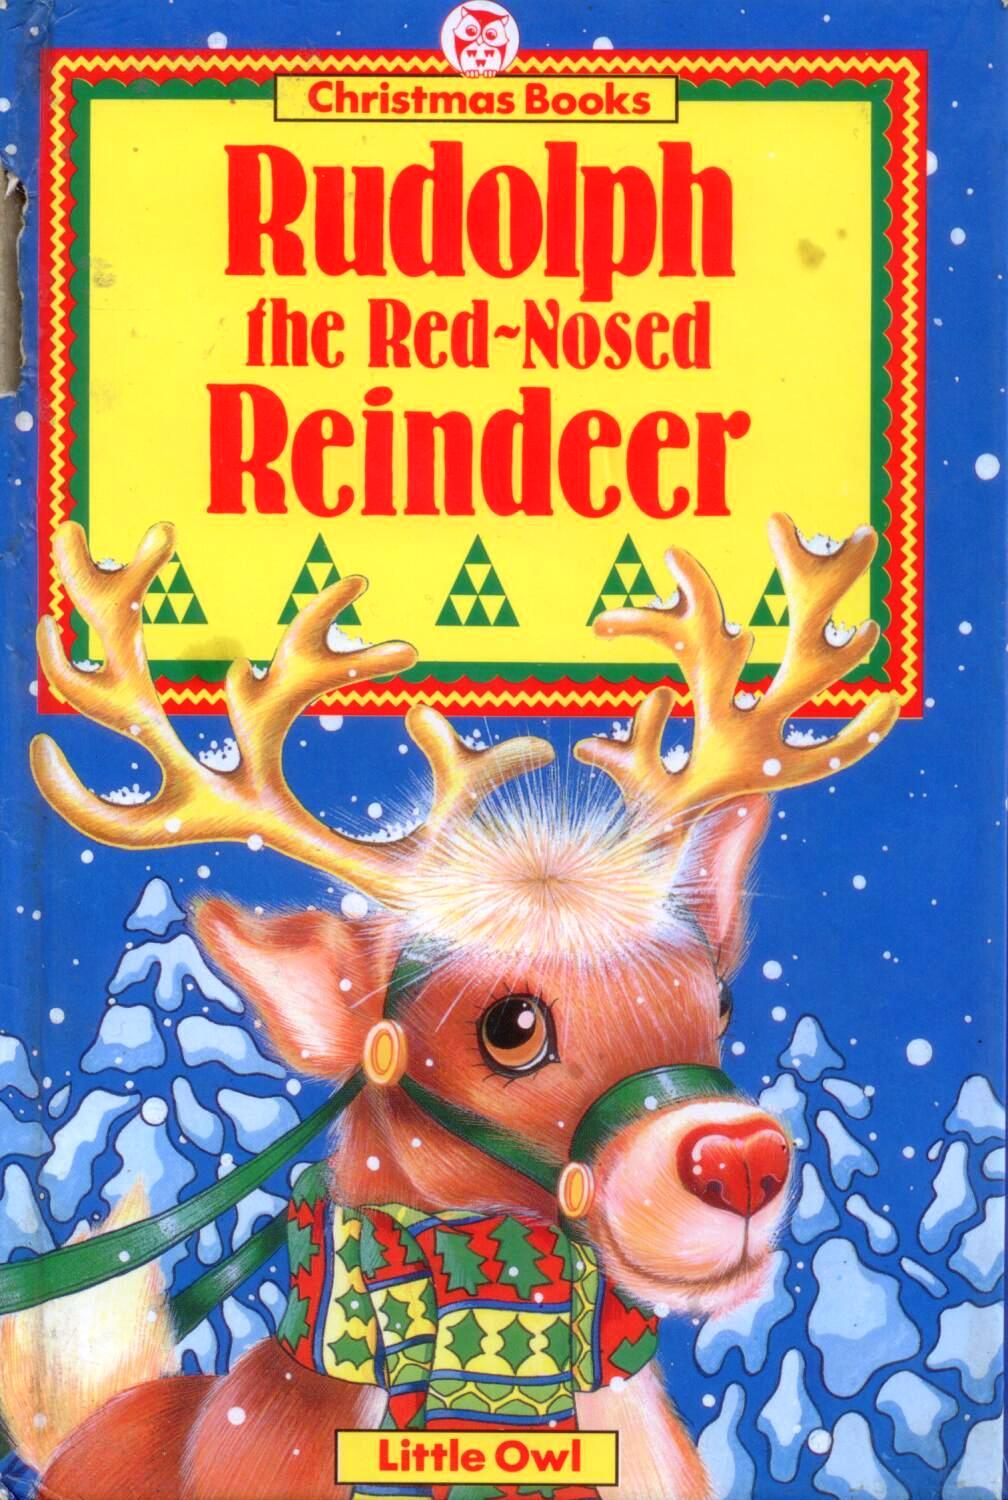 Uncategorized Rudolph The Red Nosed Reindeer Song Video rudolph the red nosed reindeer an illustrated song sing books words and